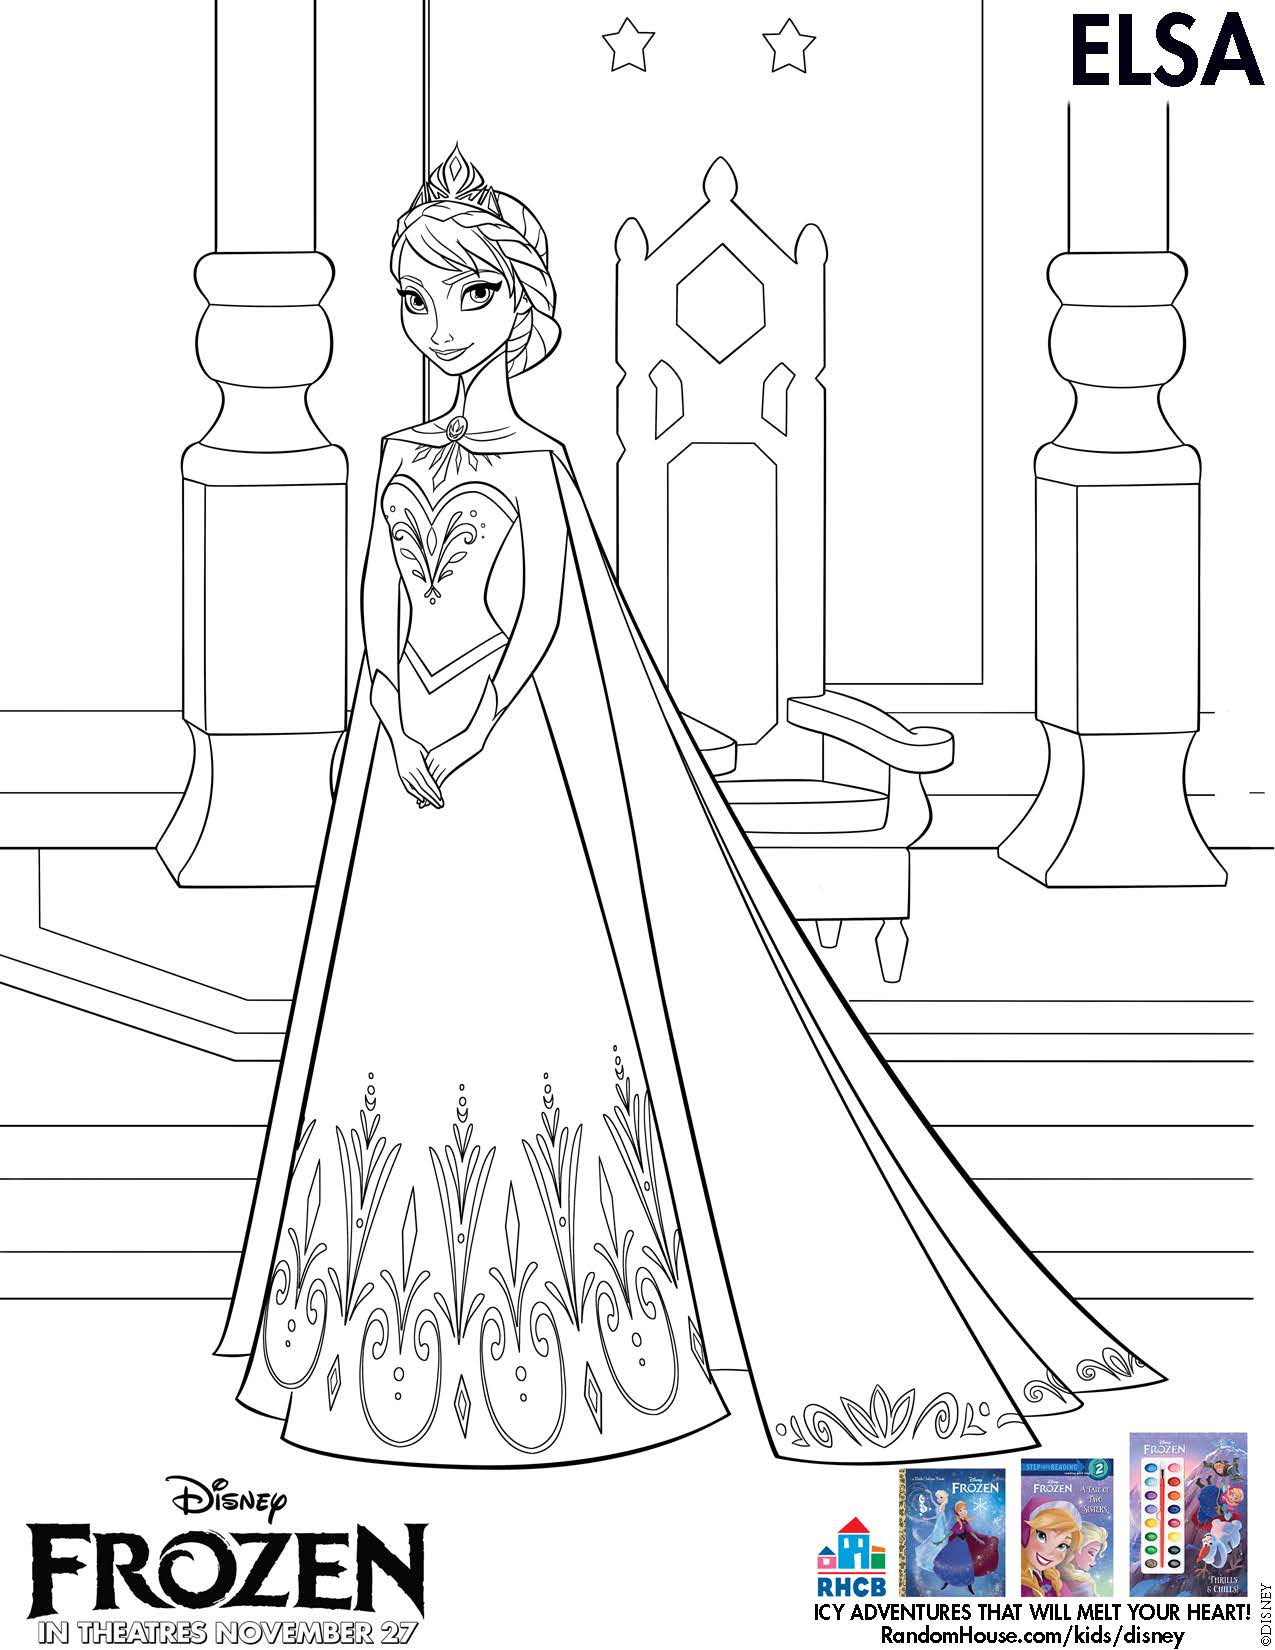 Emejing Frozen Coloring Pages To Print Contemporary Coloring